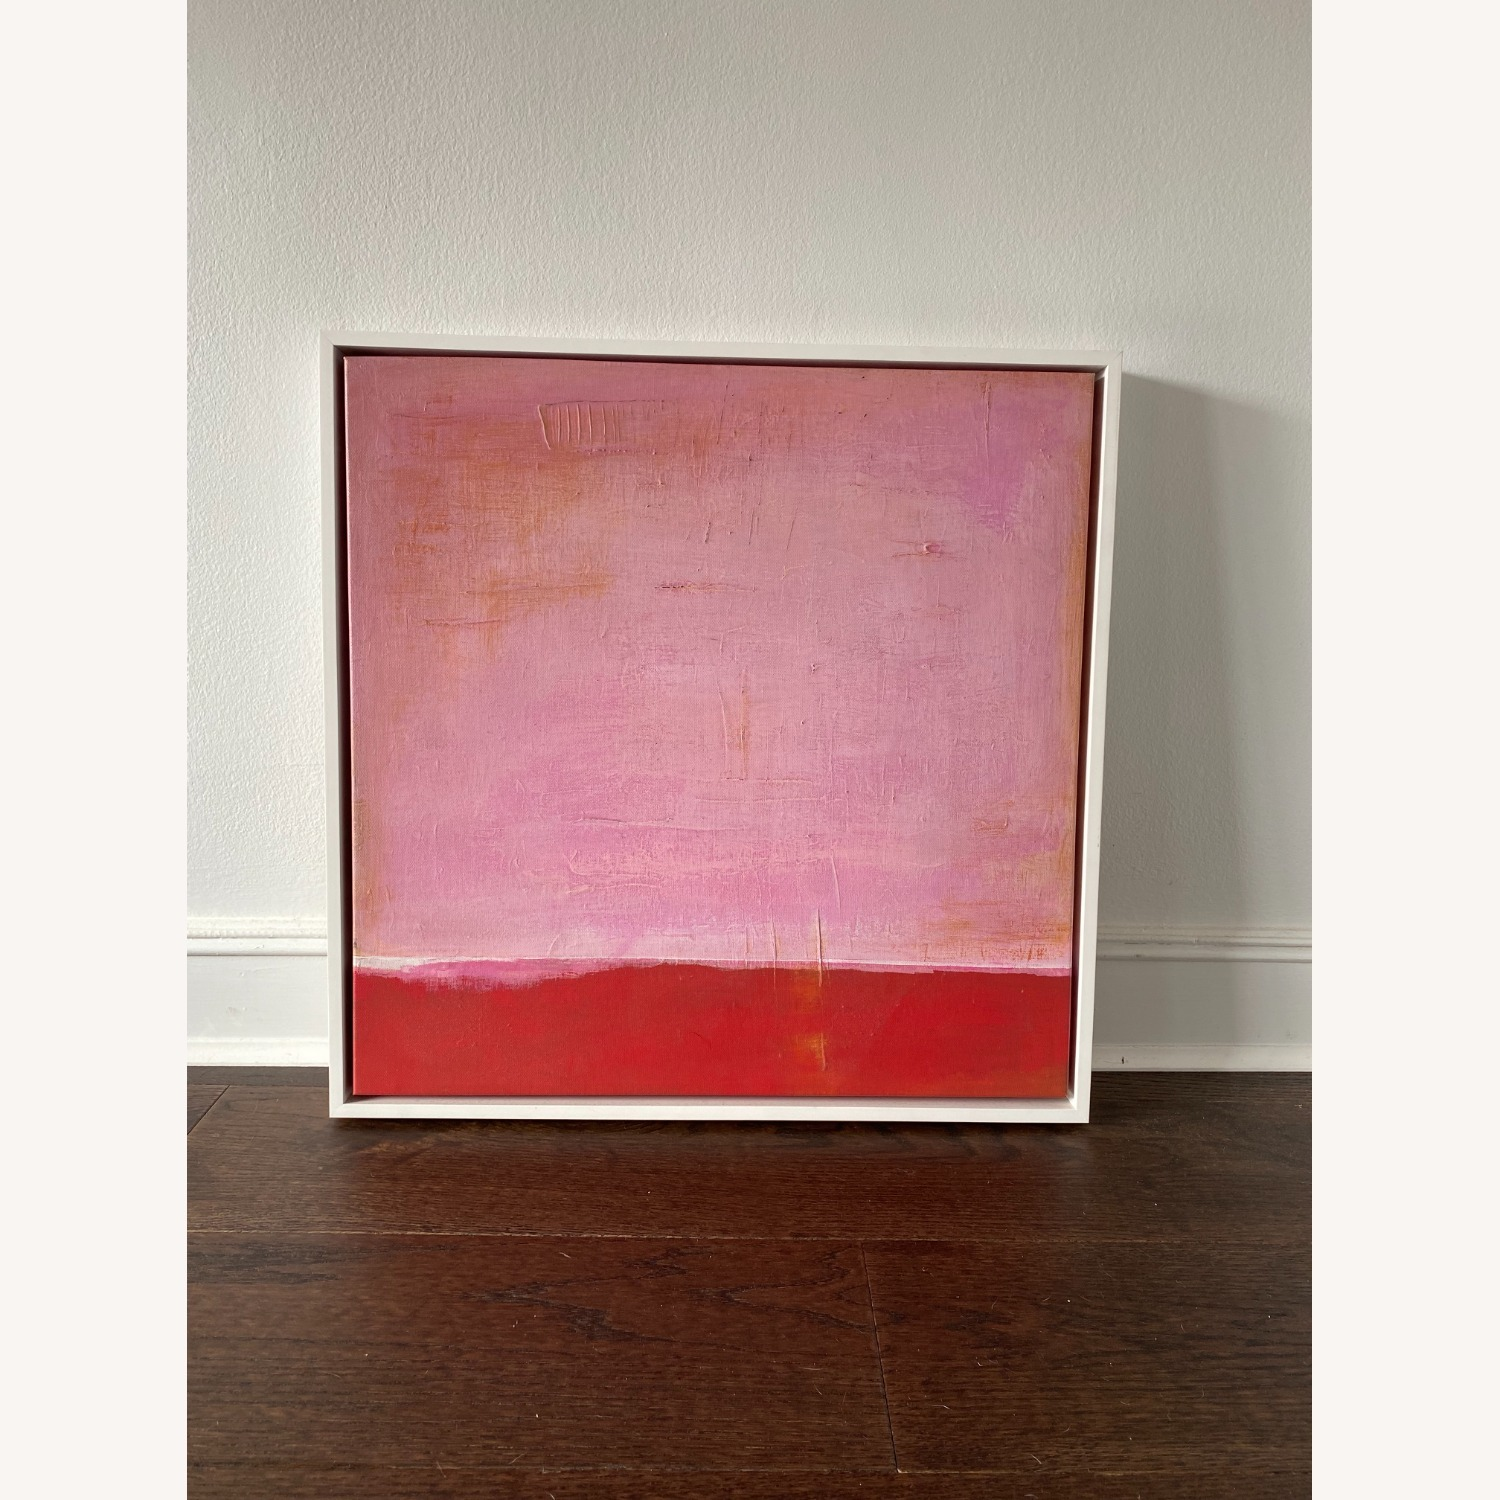 West Elm Red on Pink by Laura Gunn 24 x 24 - image-4